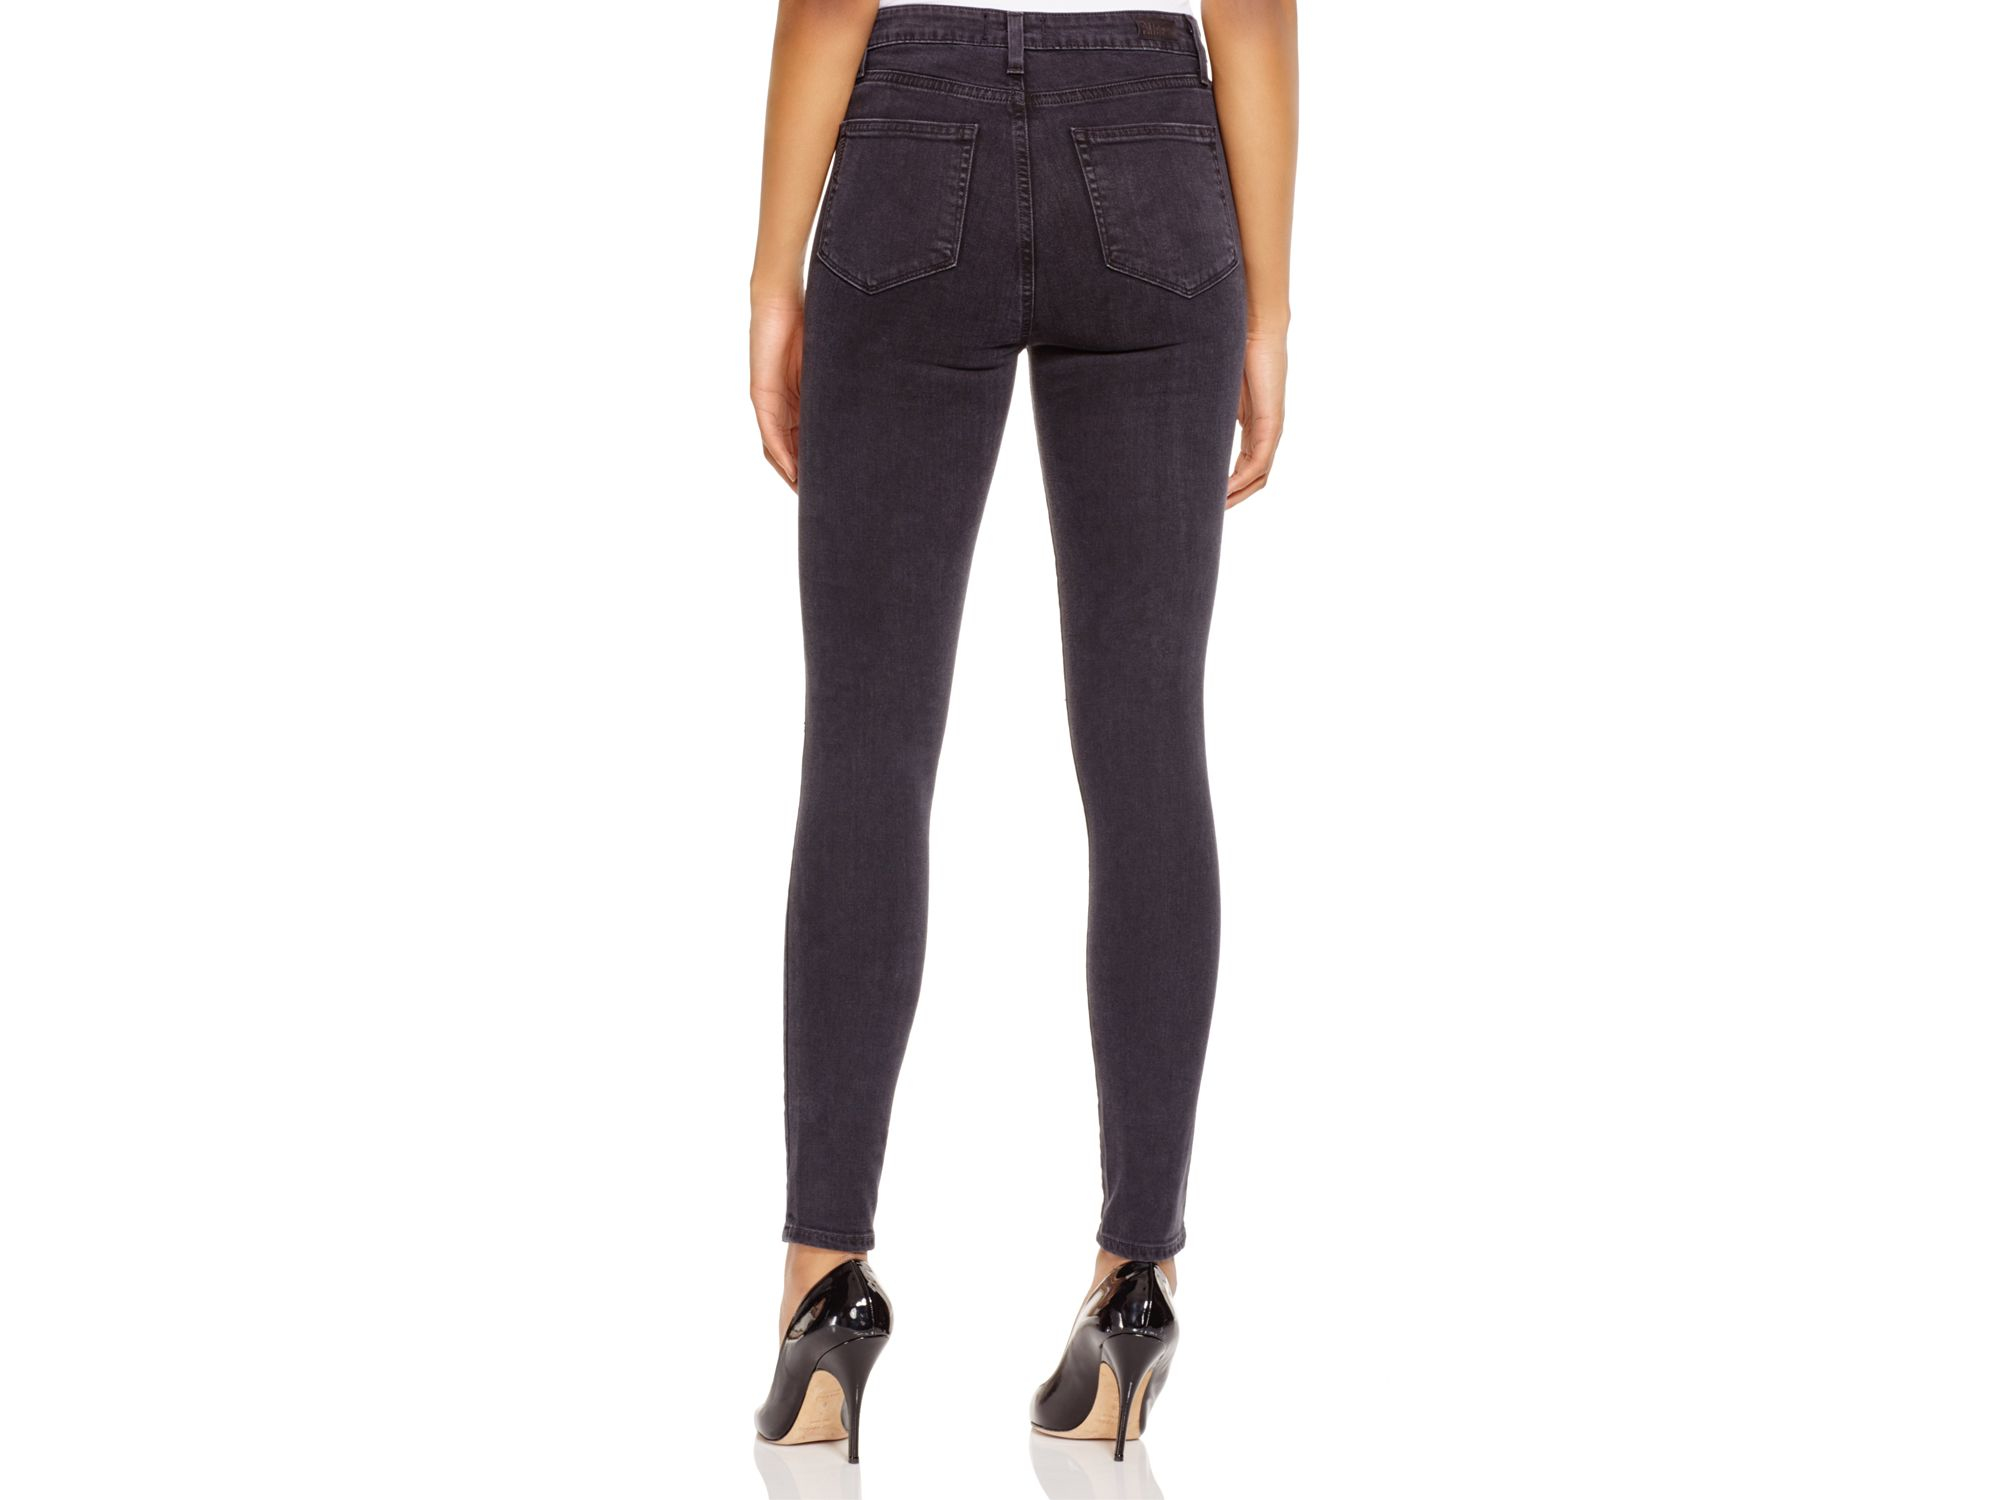 Paige Margot Ultra Skinny Jeans In Joannie Black in Black | Lyst